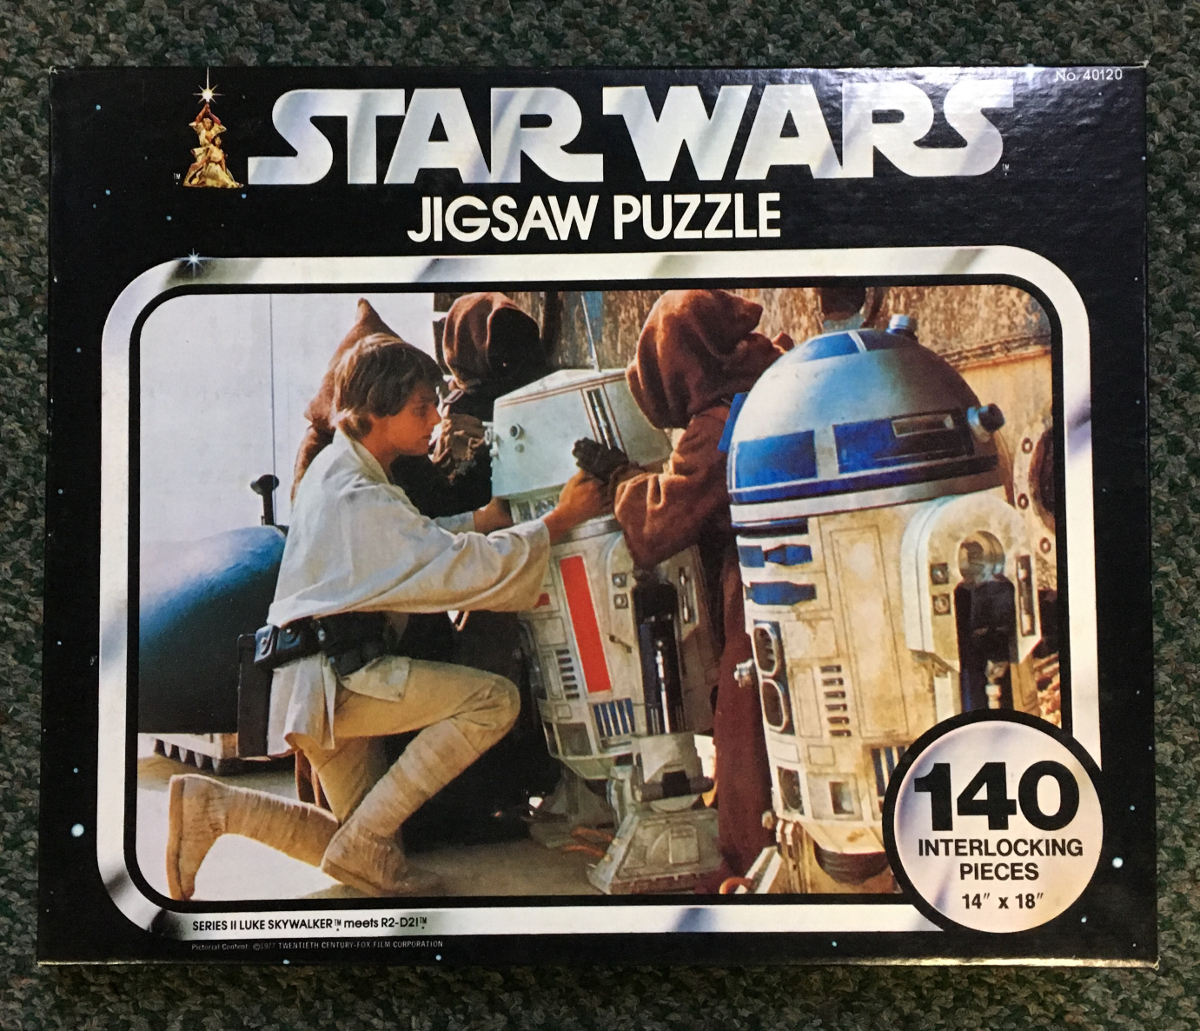 luke skywalker meets R2-D2 puzzle